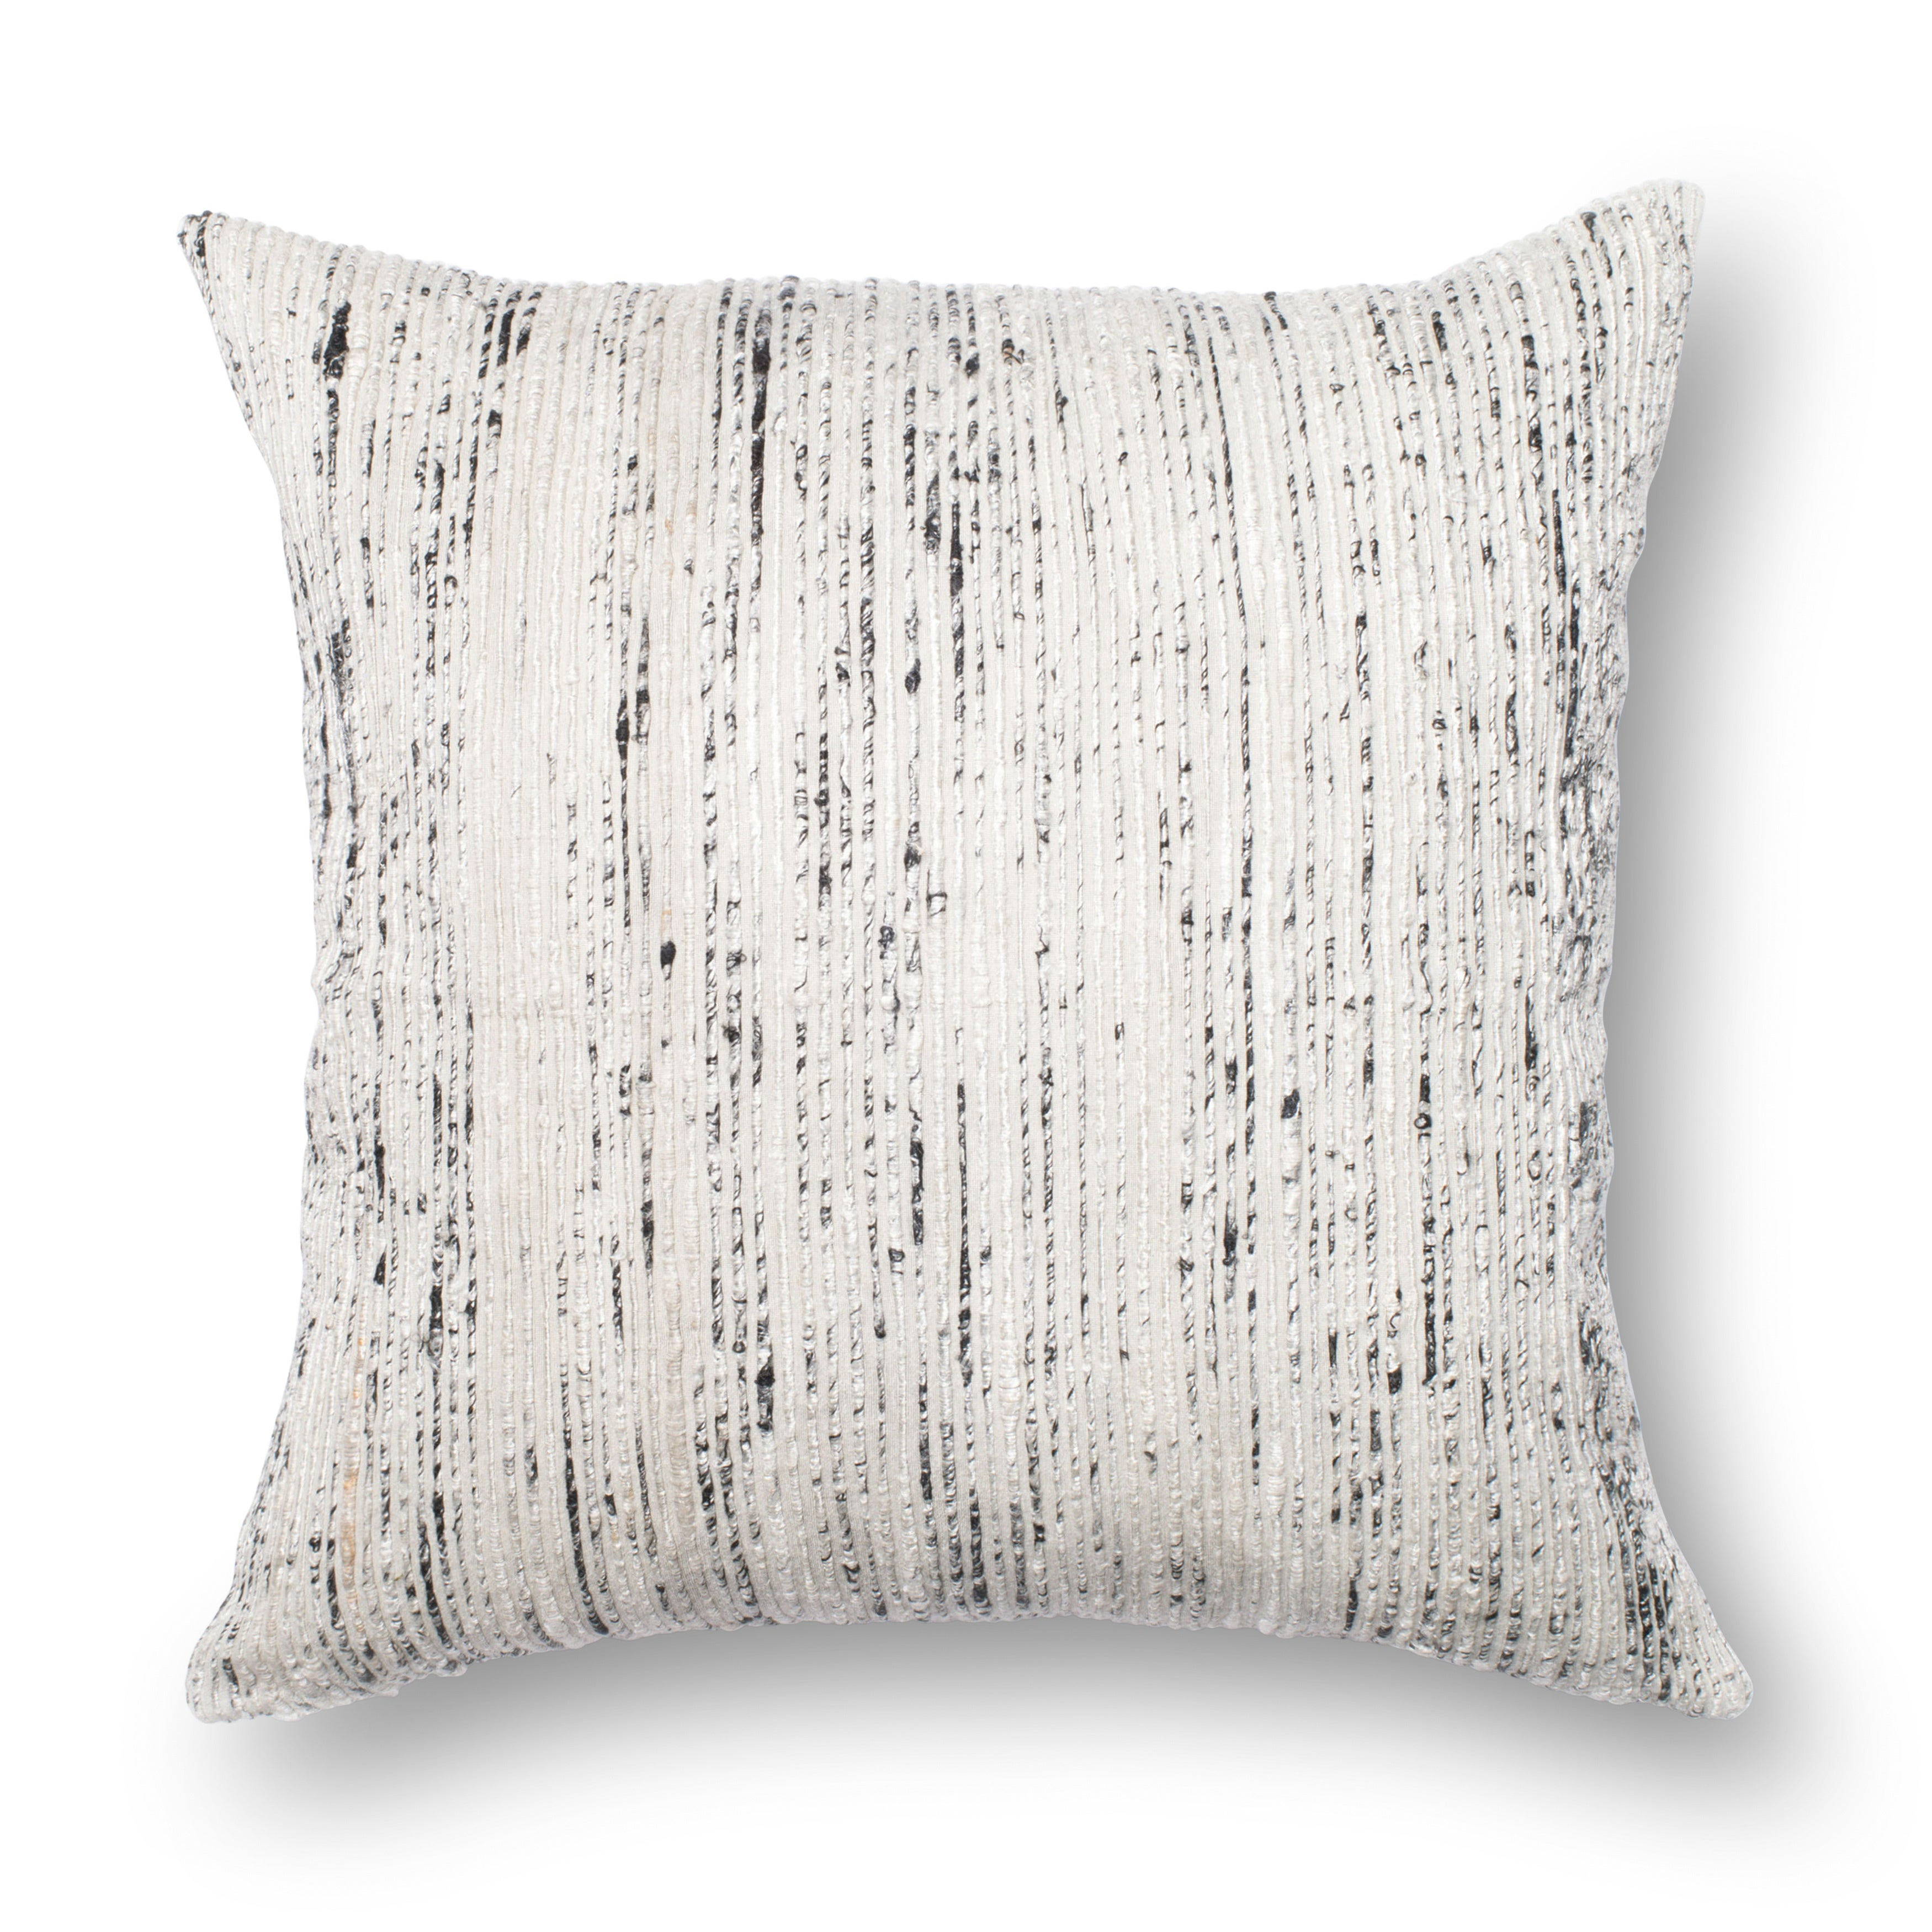 Textured Silver Ivory Stripe 22 Inch Throw Pillow Or Pillow Cover On Sale Overstock 18081313 Pillow Covers N A Rustic Bohemian Eclectic